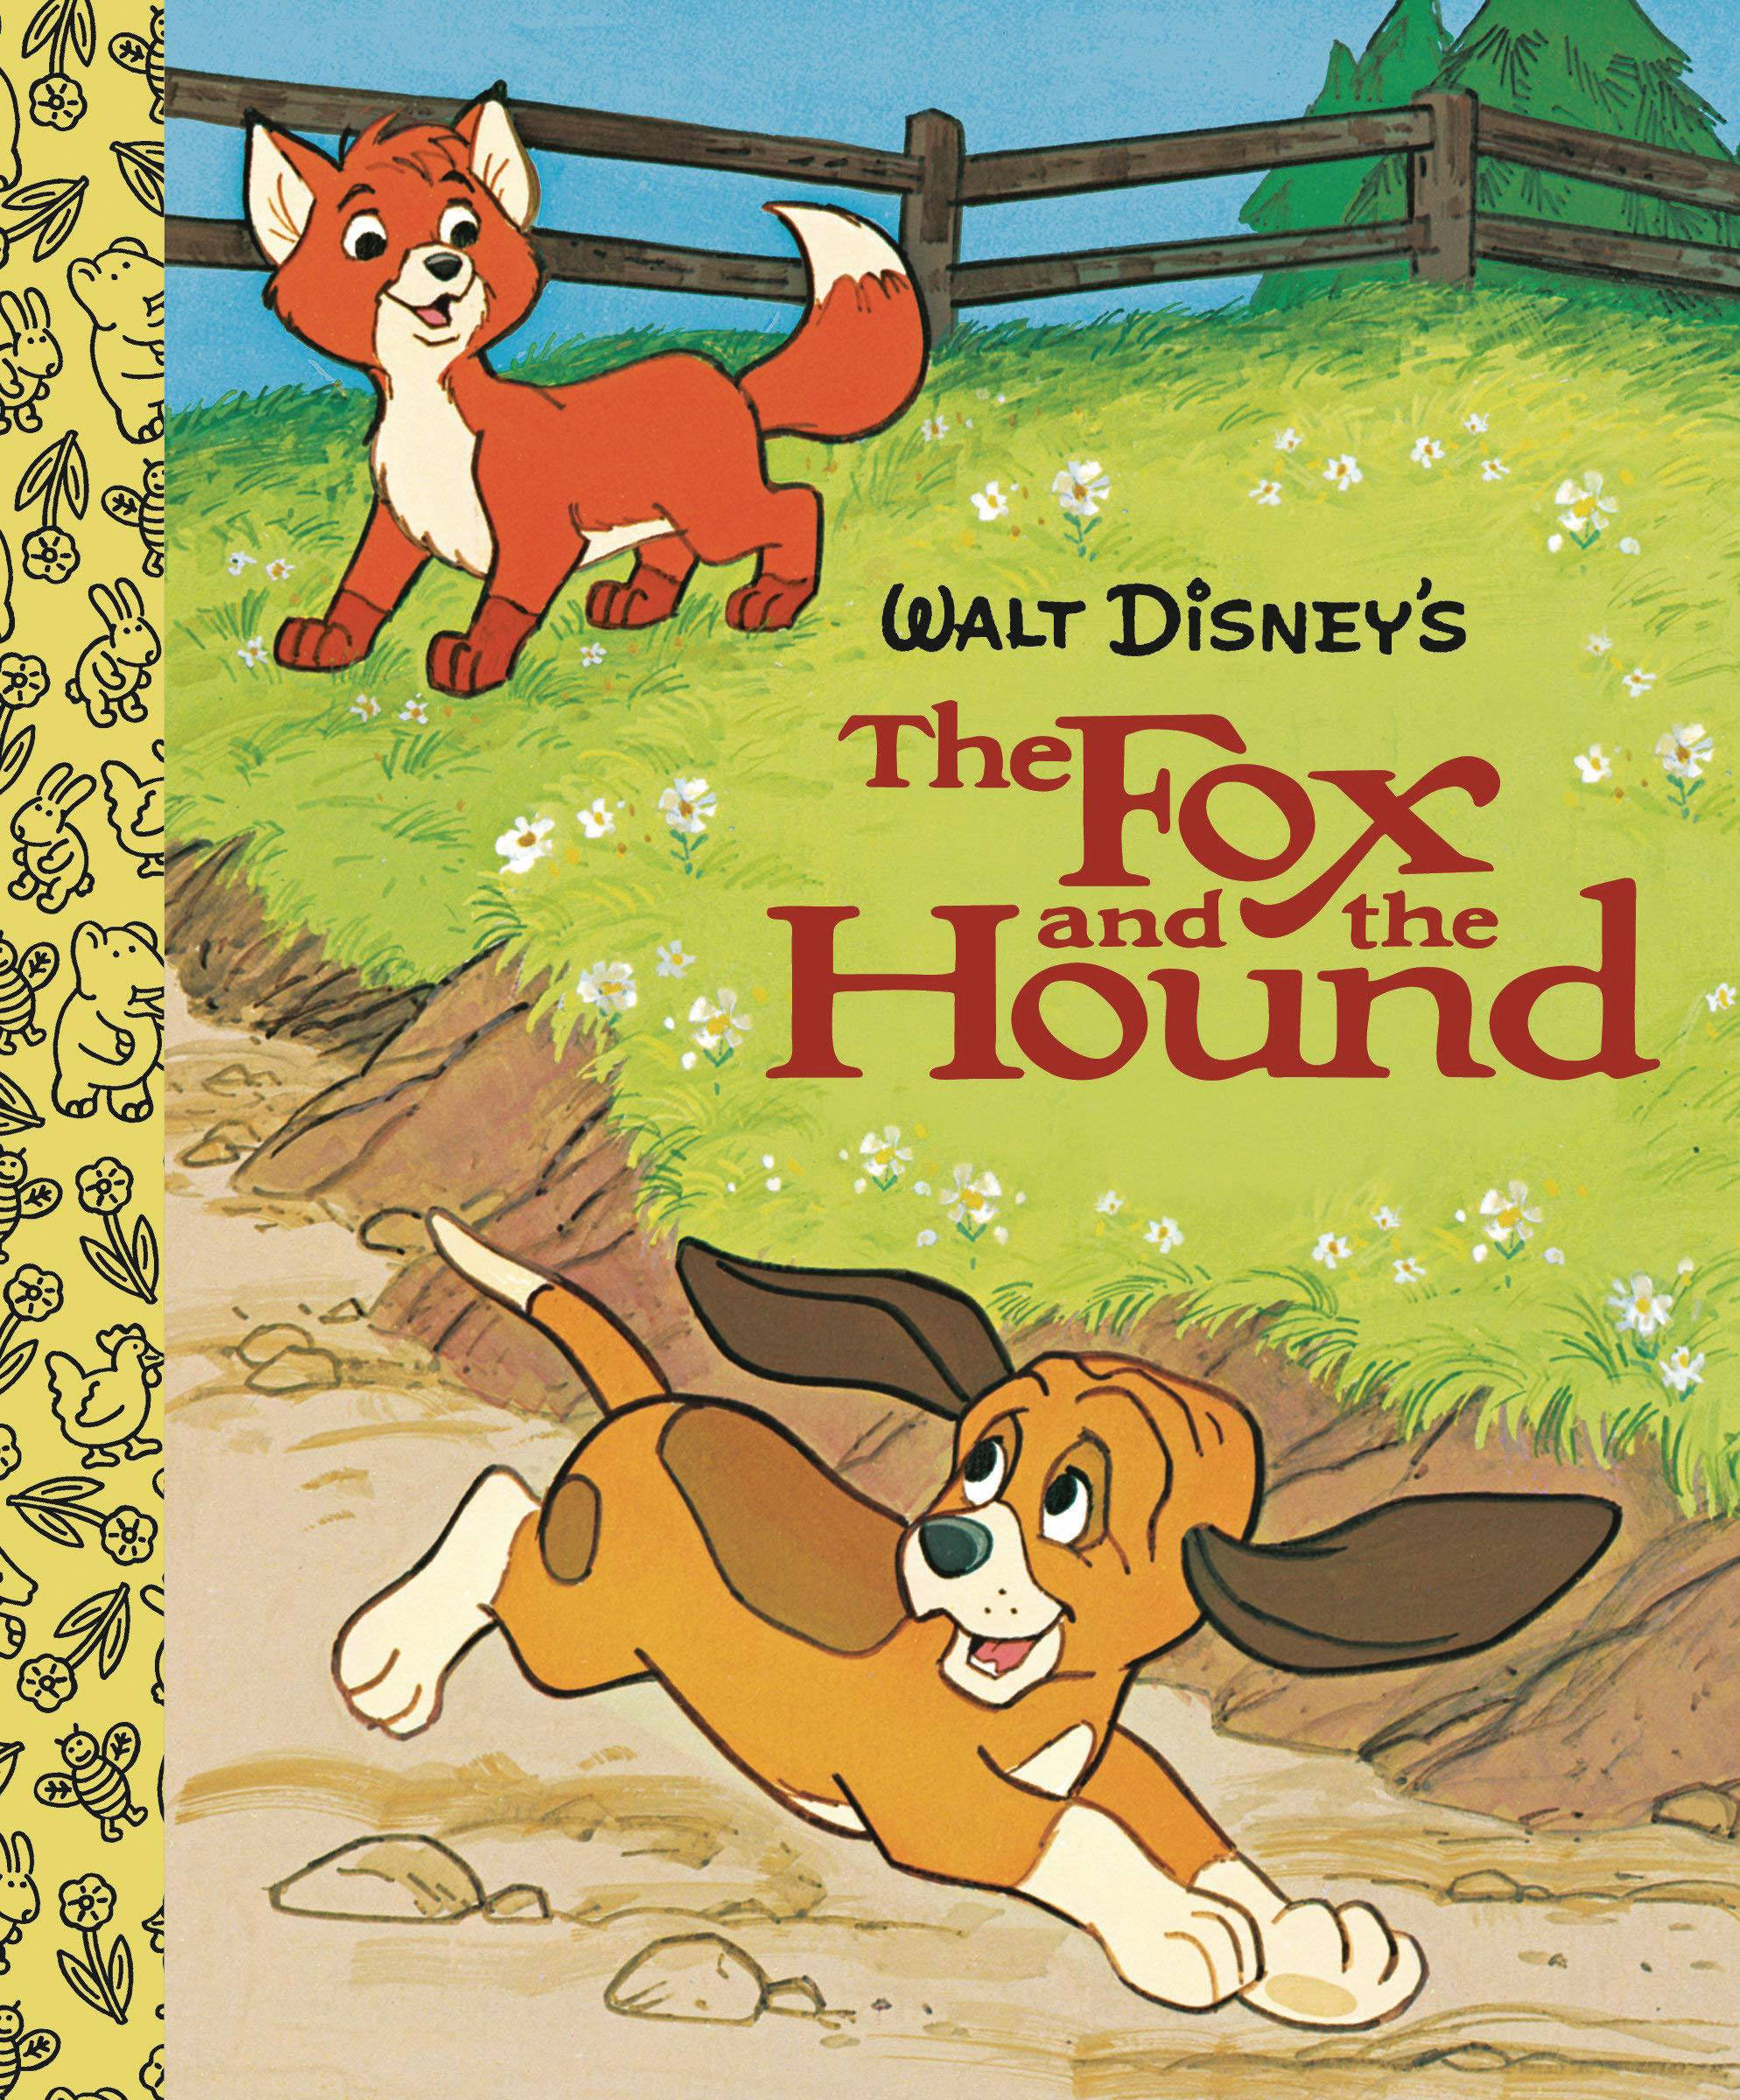 WALT DISNEYS FOX & HOUND LITTLE GOLDEN BOARD BOOK